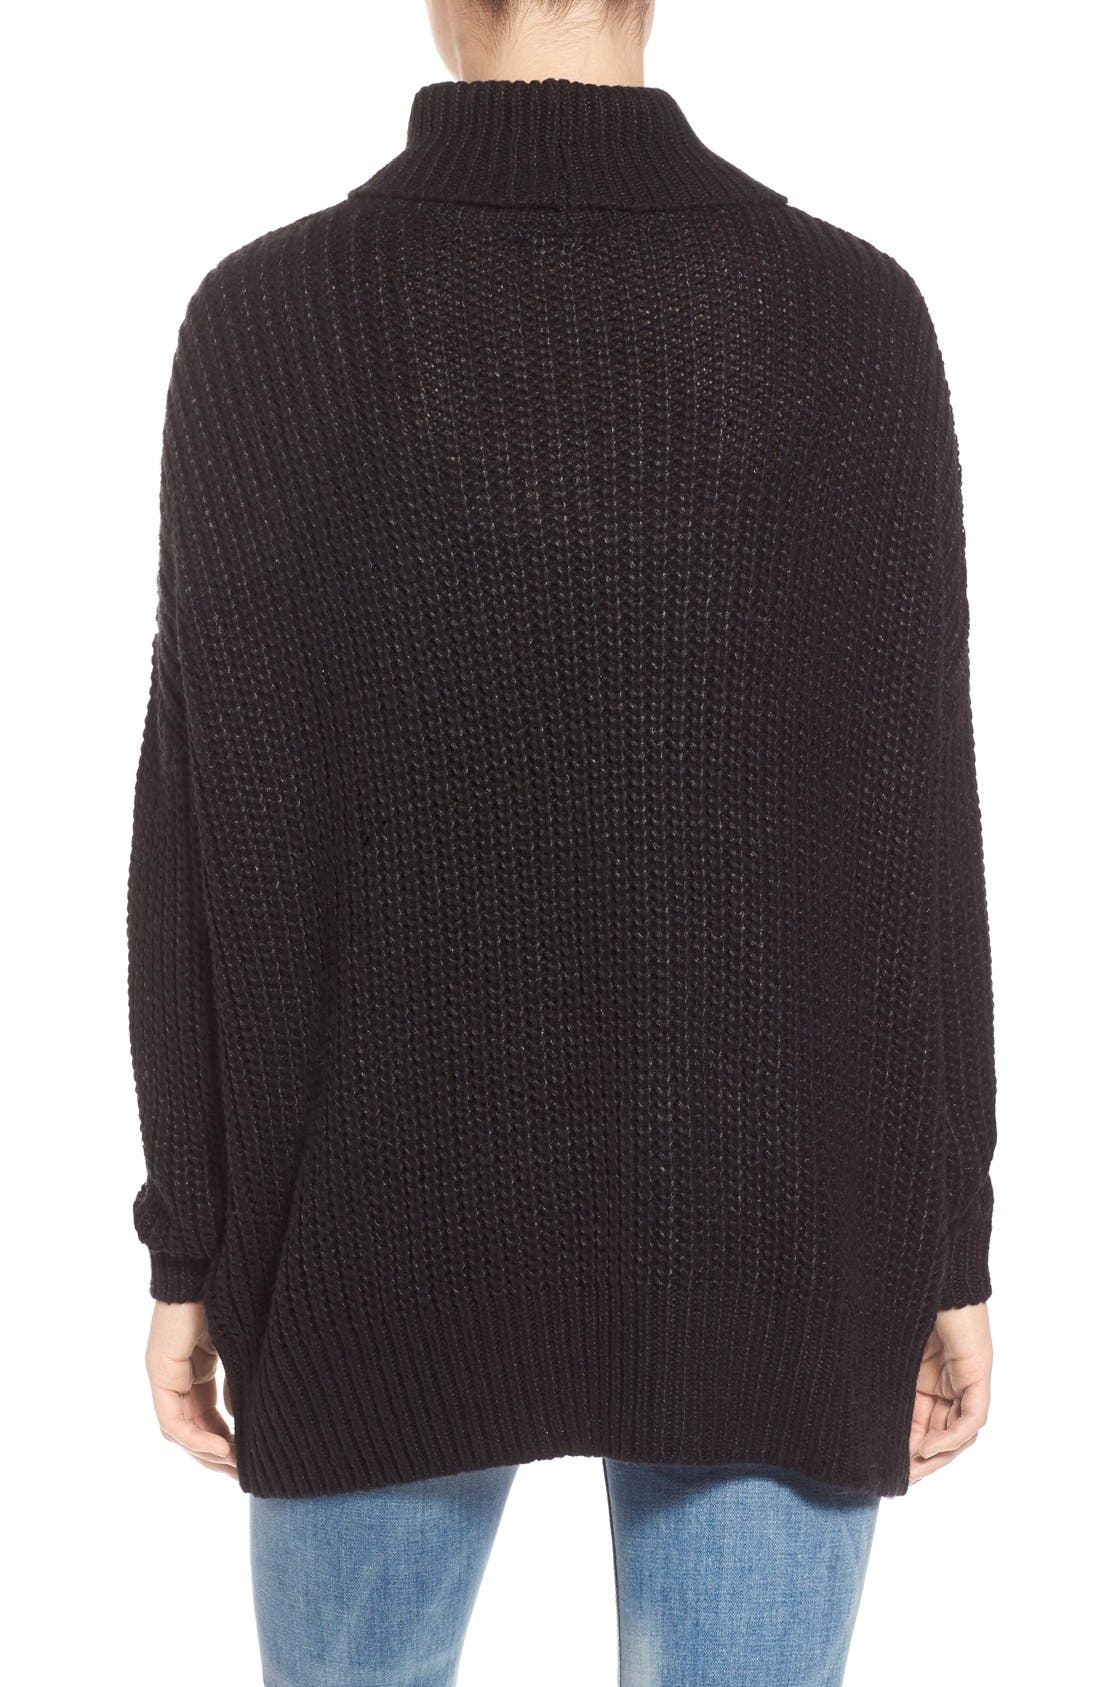 LEITH, Oversize Turtleneck Sweater, Alternate thumbnail 5, color, 001